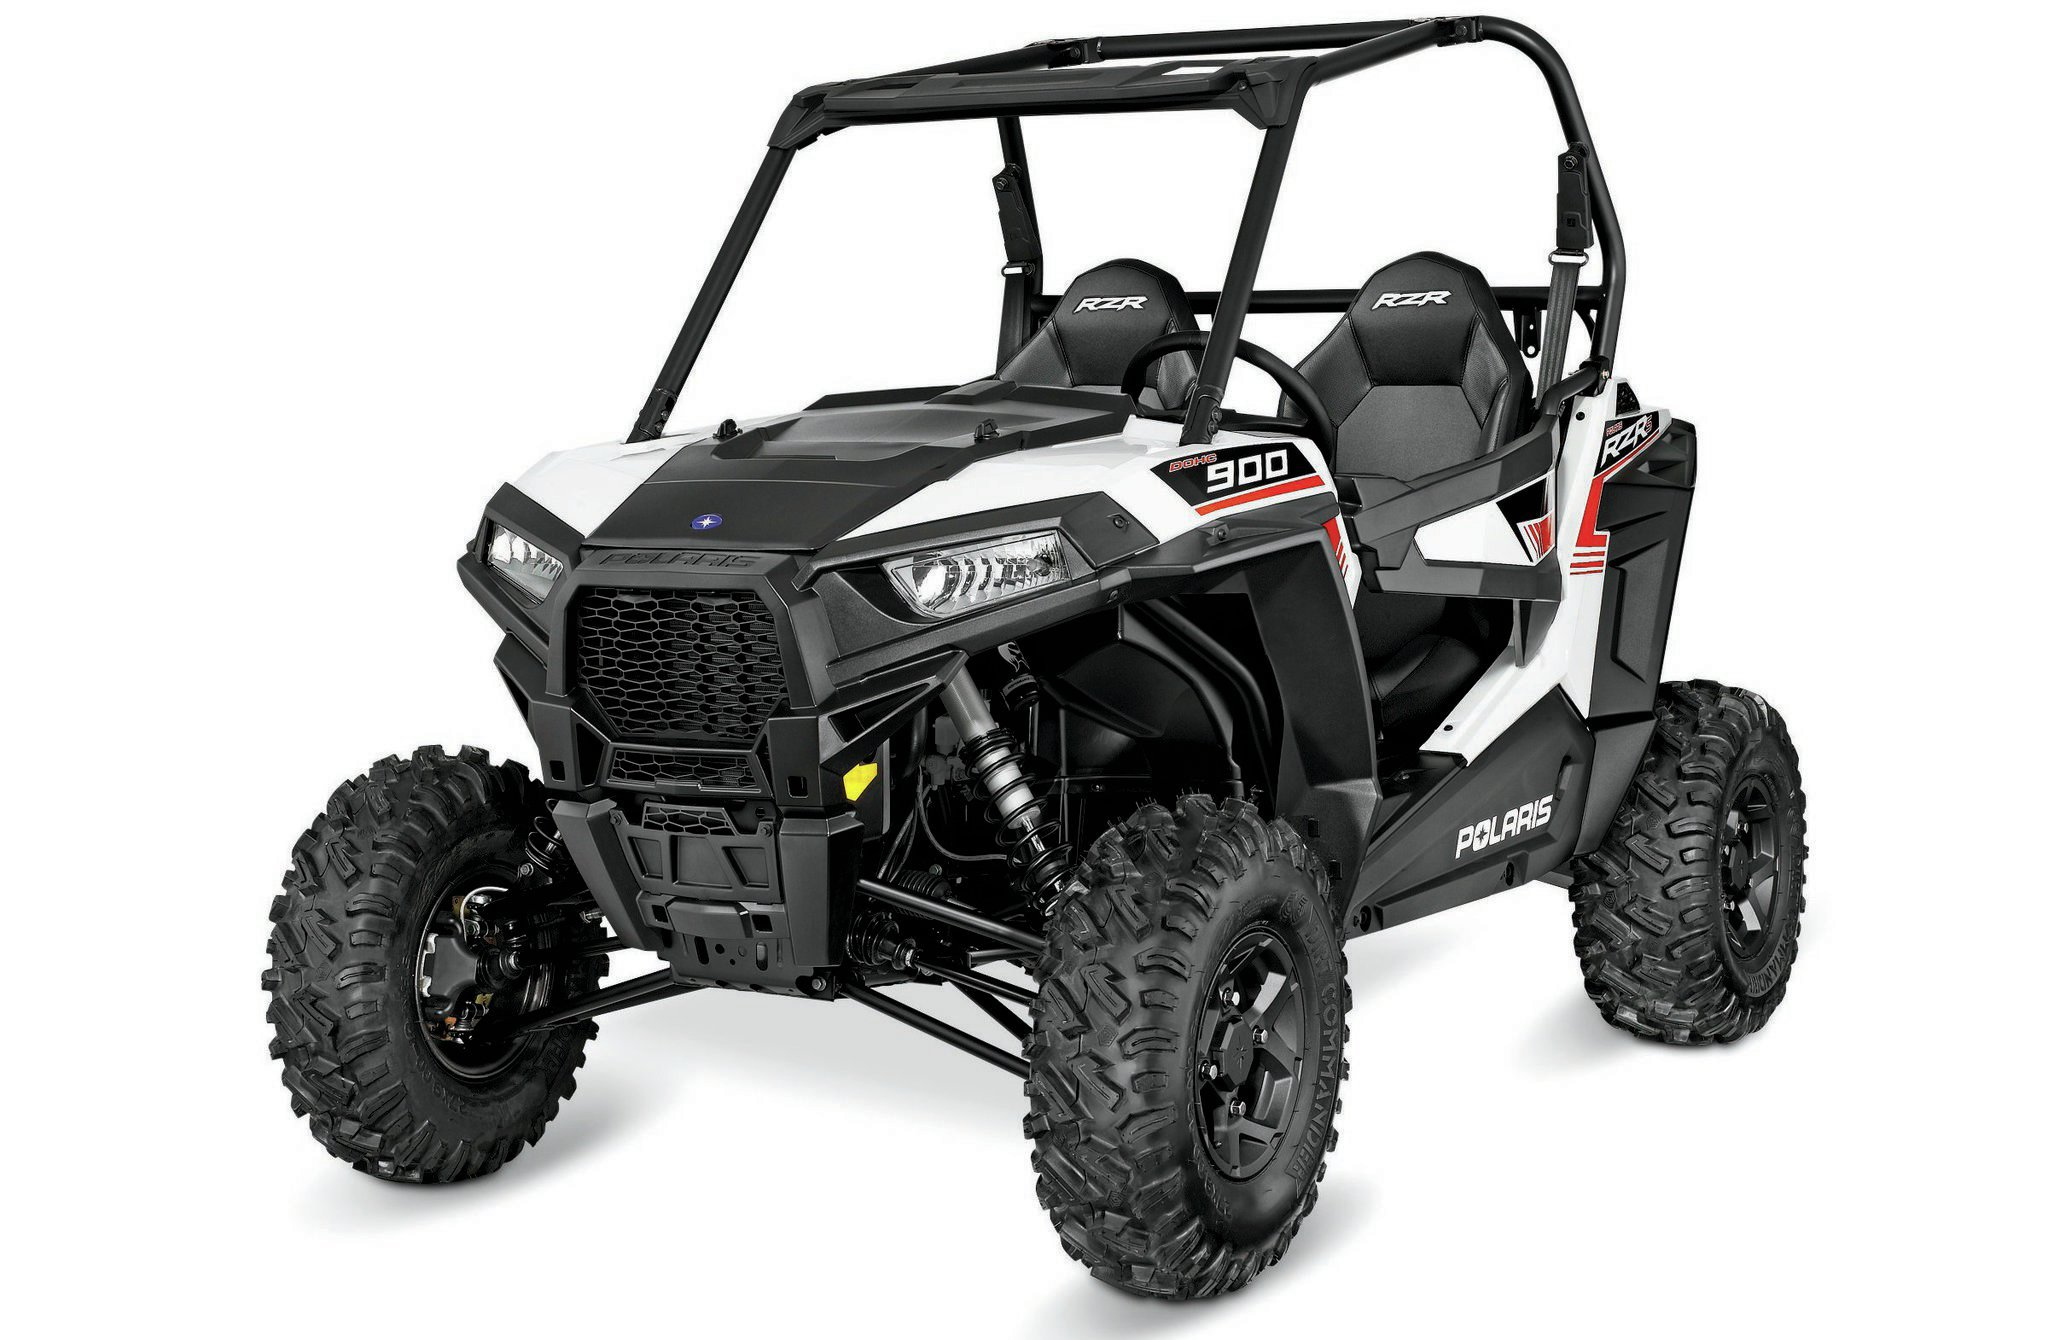 The RZR S 900 new body will excite those who liked the RZR 1000. It is the same from the B-pillar forward. With 12-volt accessory power under the hood to the blue LED interior and adjustable driver seating, it's all new to RZR S.